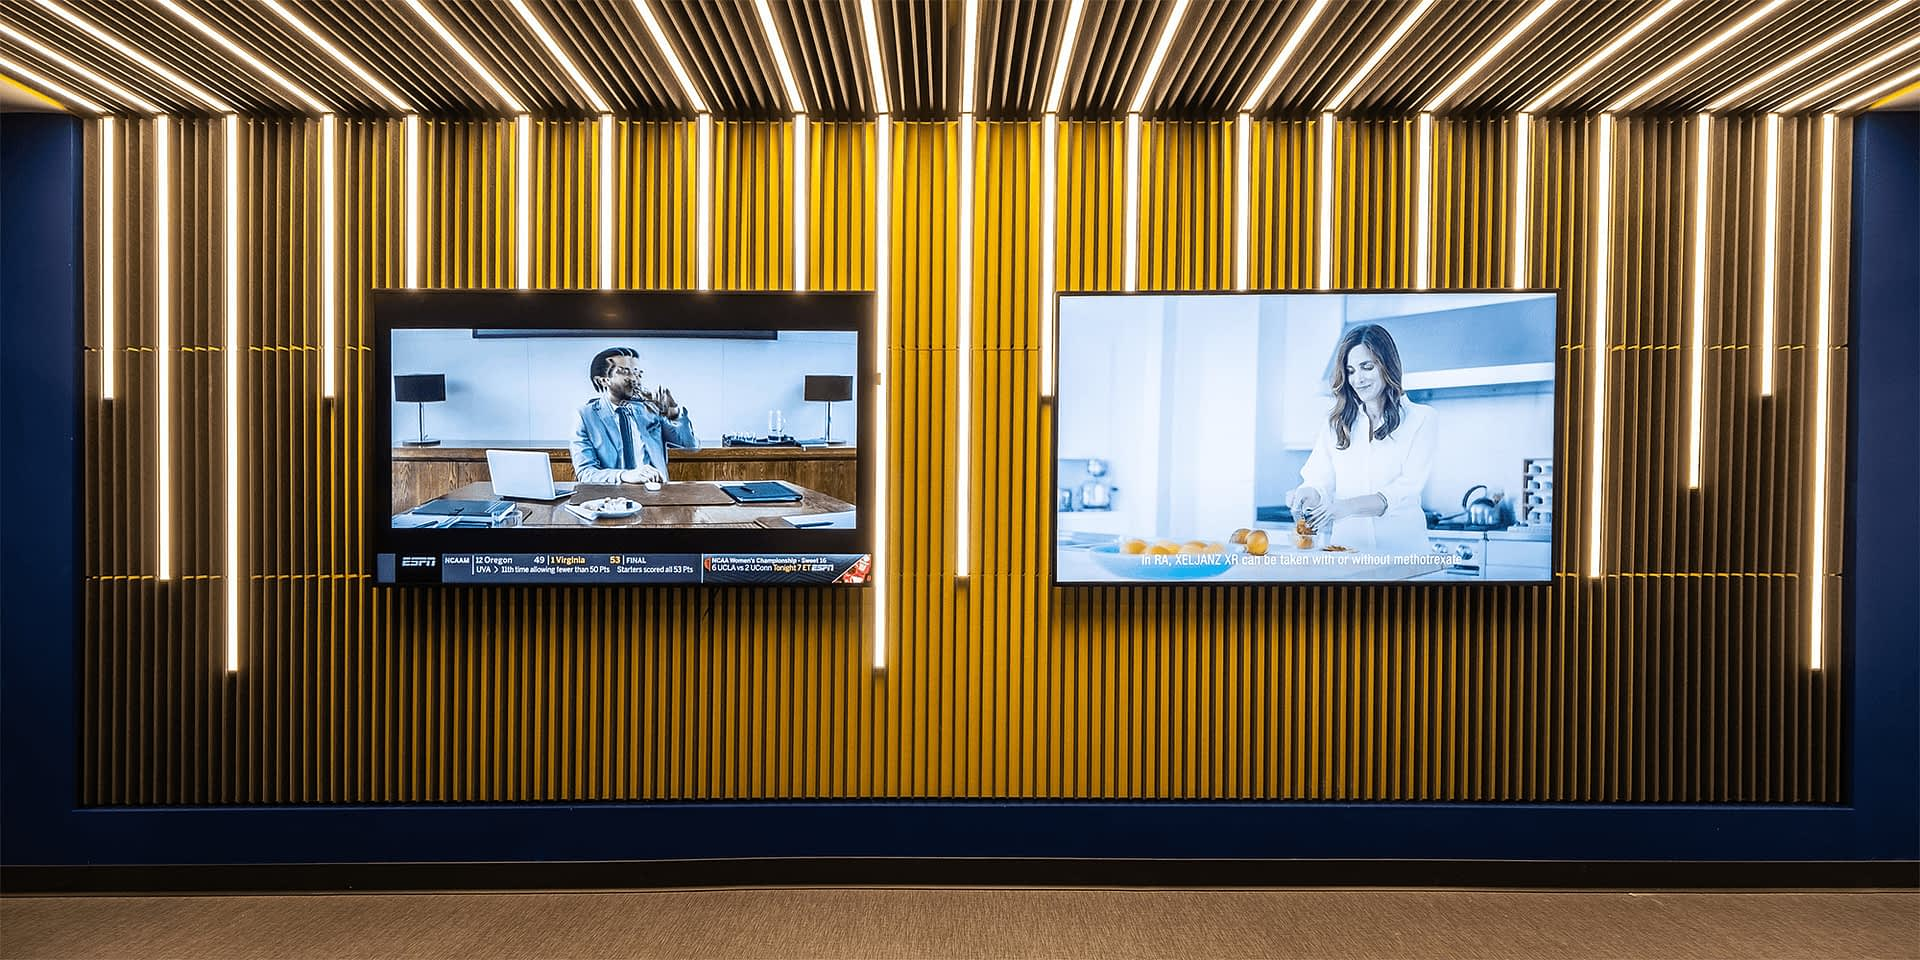 hallway with abstract blue and yellow walls, linear light fixtures, and two TVs